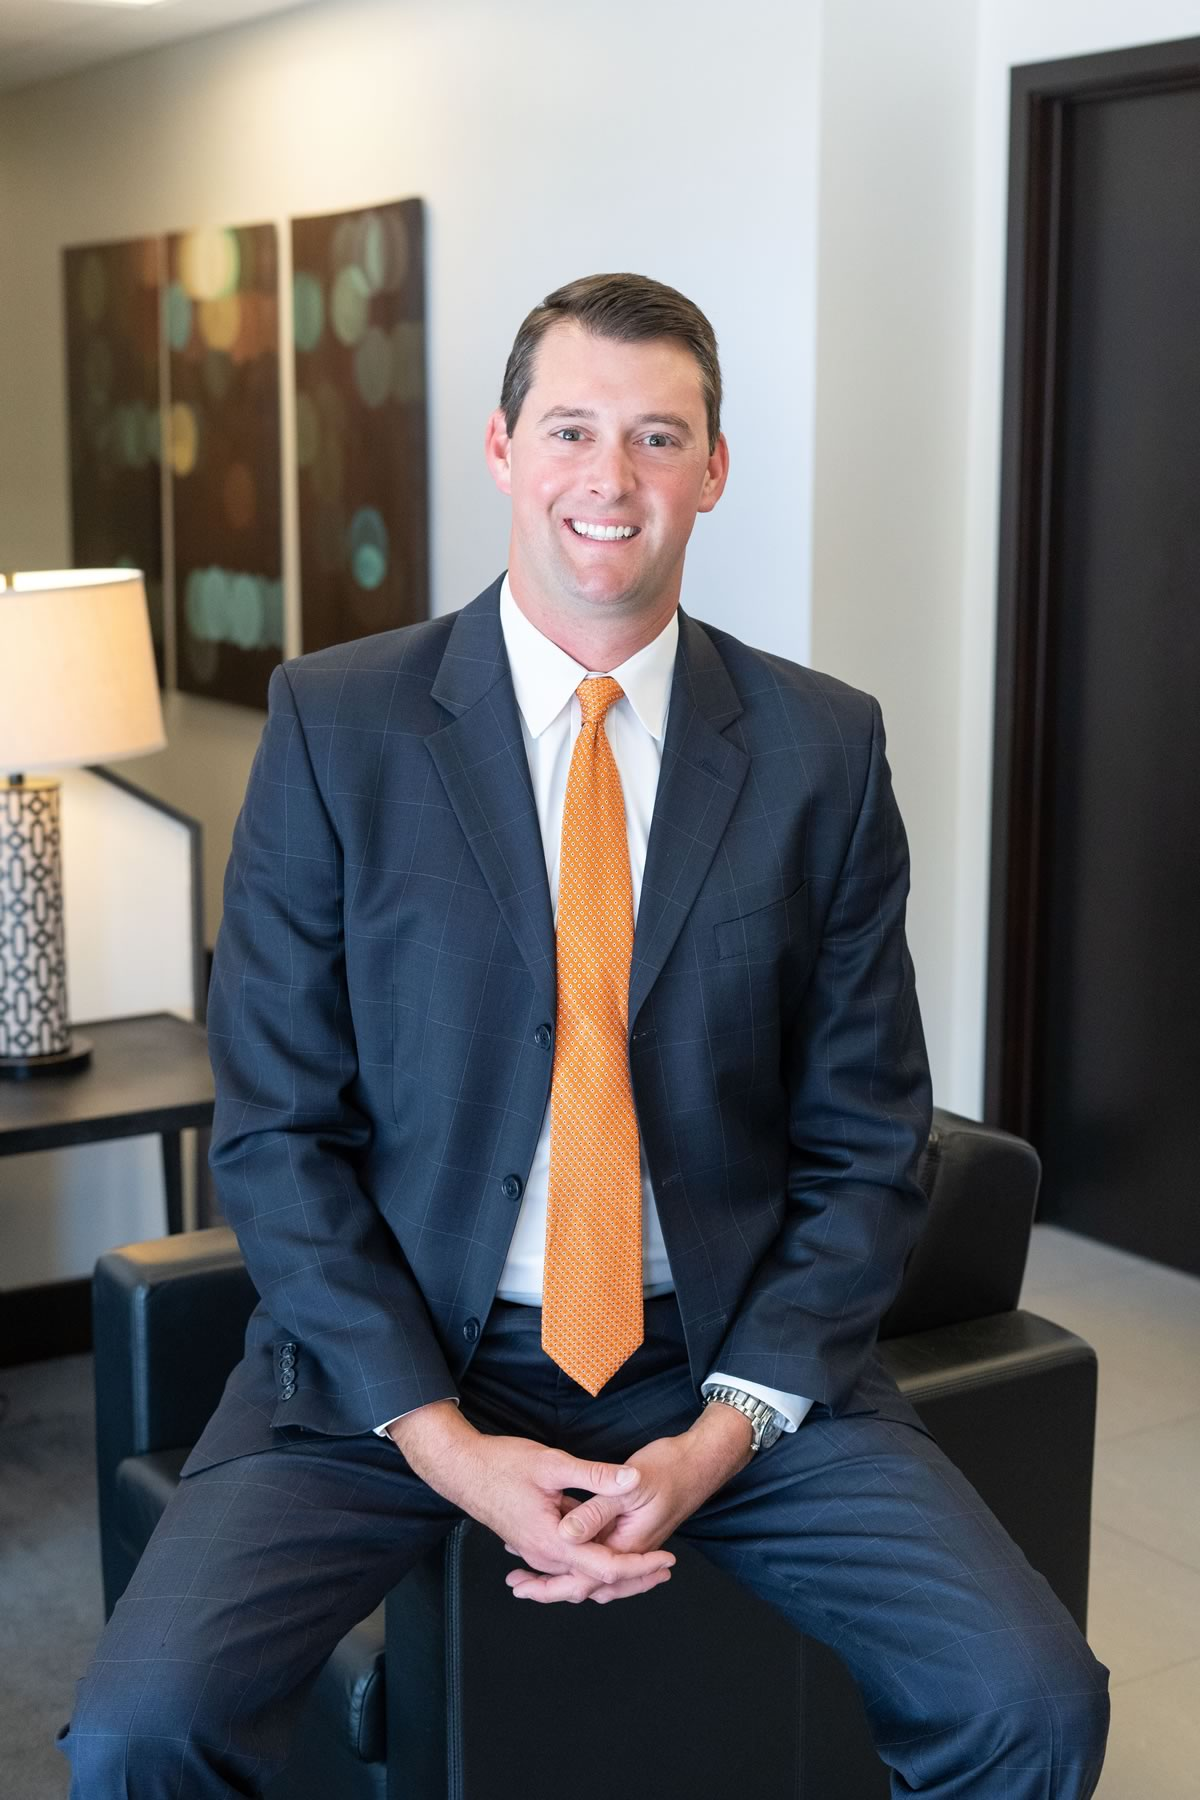 Ryan-Young-DWKMR&S-Law-firm